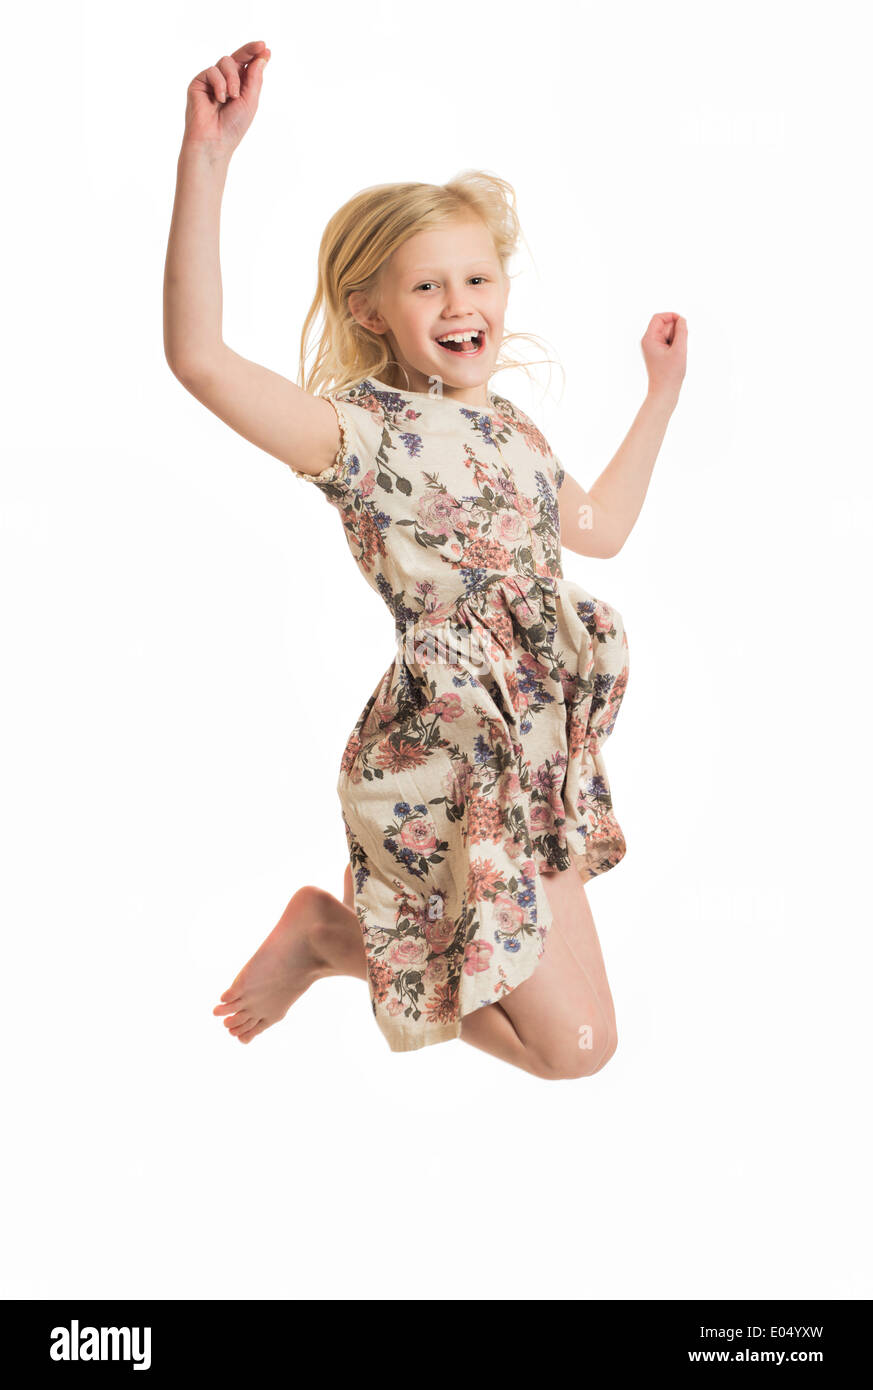 Young happy girl jumping isolated on a white background - Stock Image